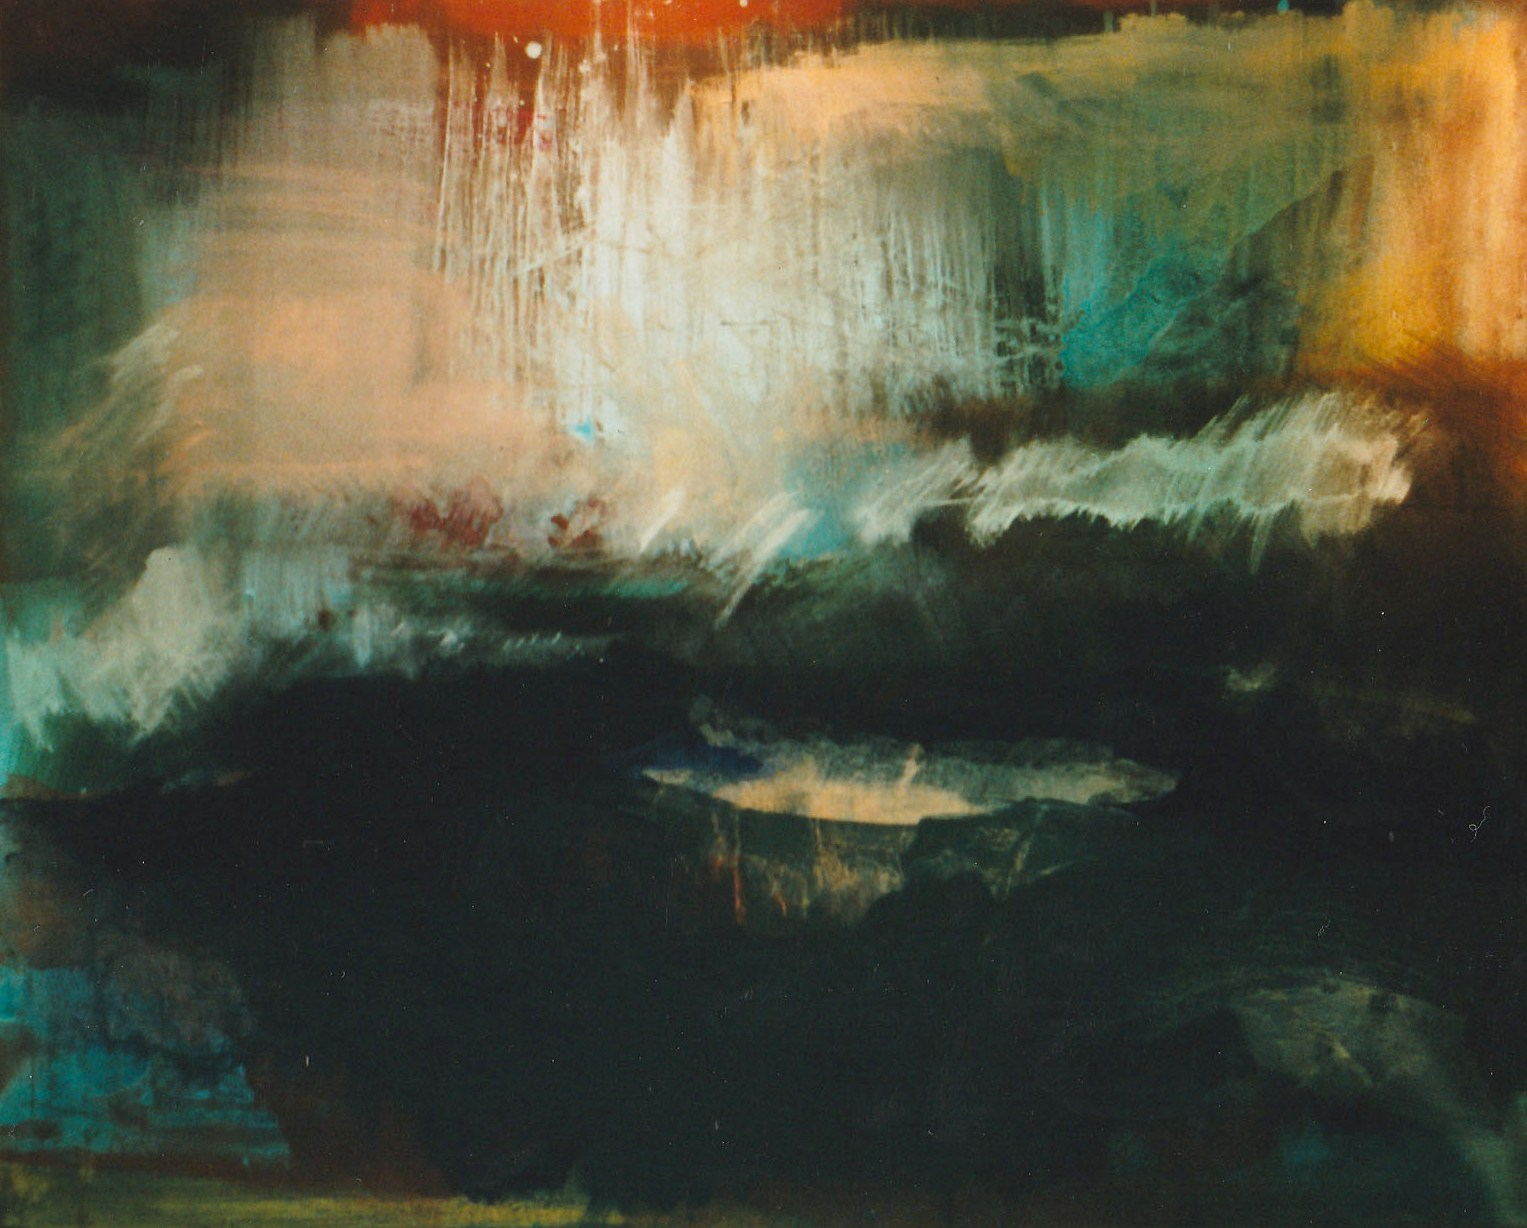 abstract, acrylic on canvas, 1998, 121 x 91cm sold